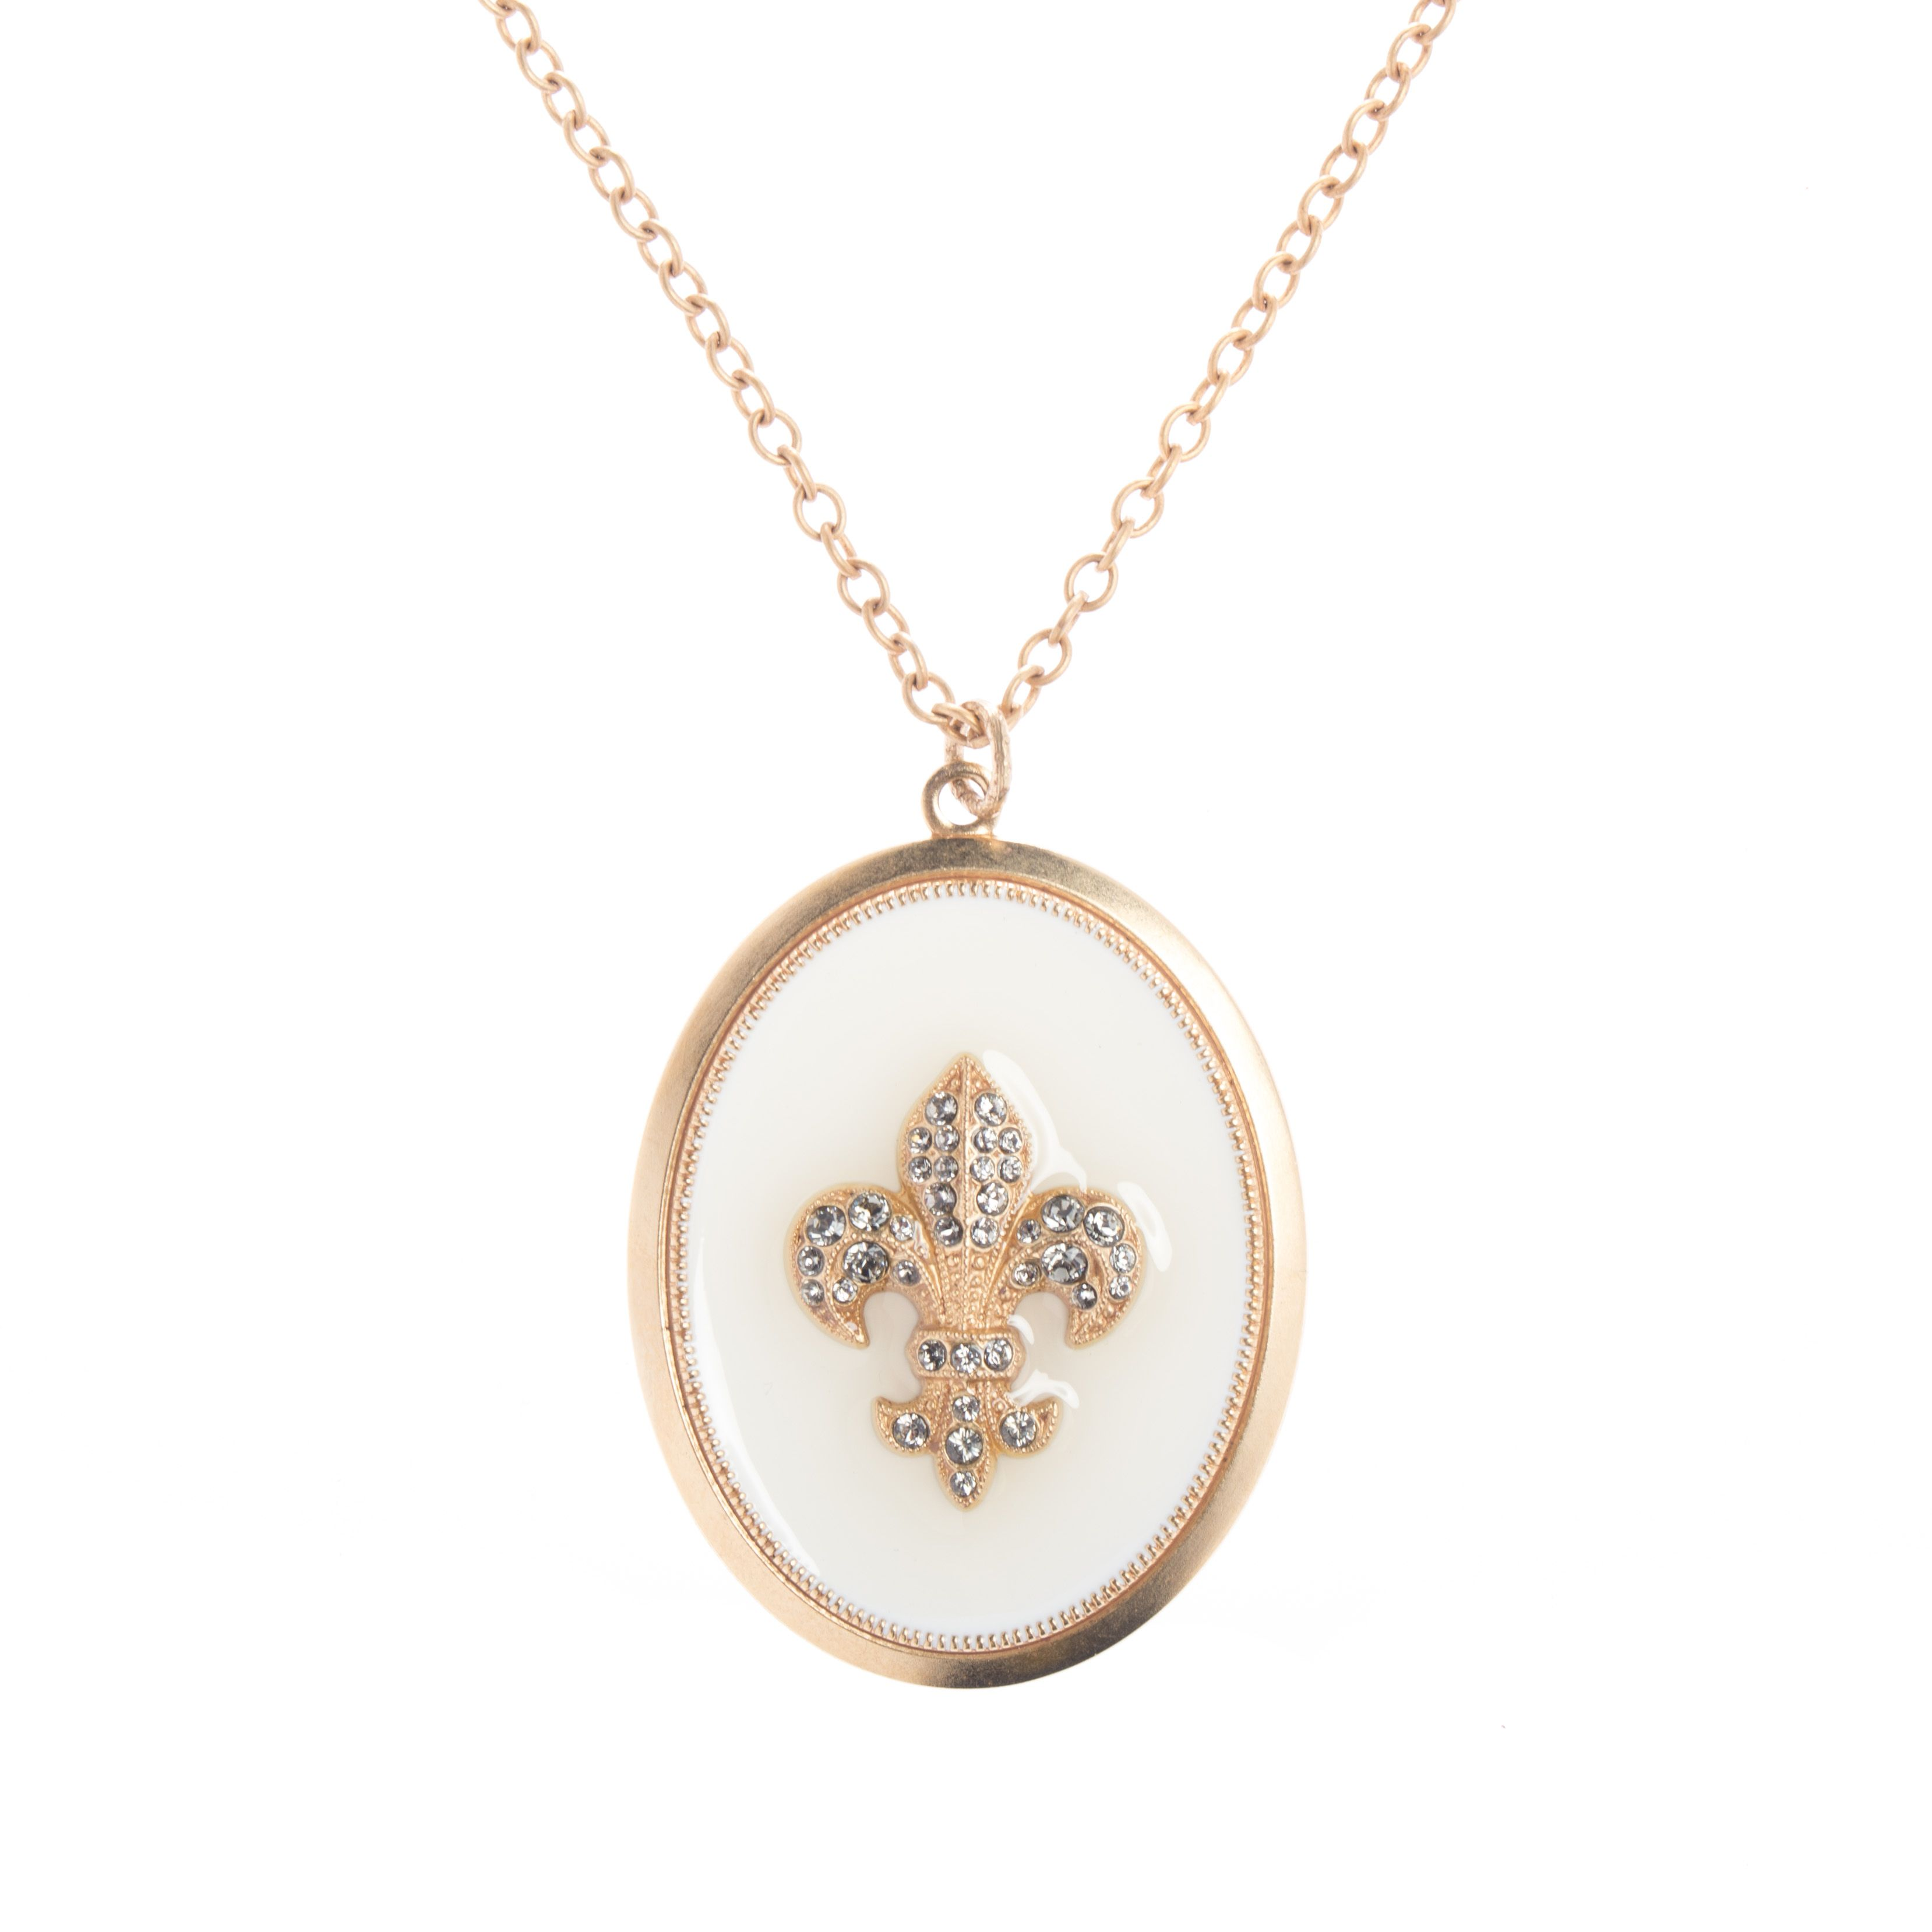 7dae1cdfcc3a7 Catherine Popesco Large Oval Crystal Fleur-de-Lis French Enamel Necklace